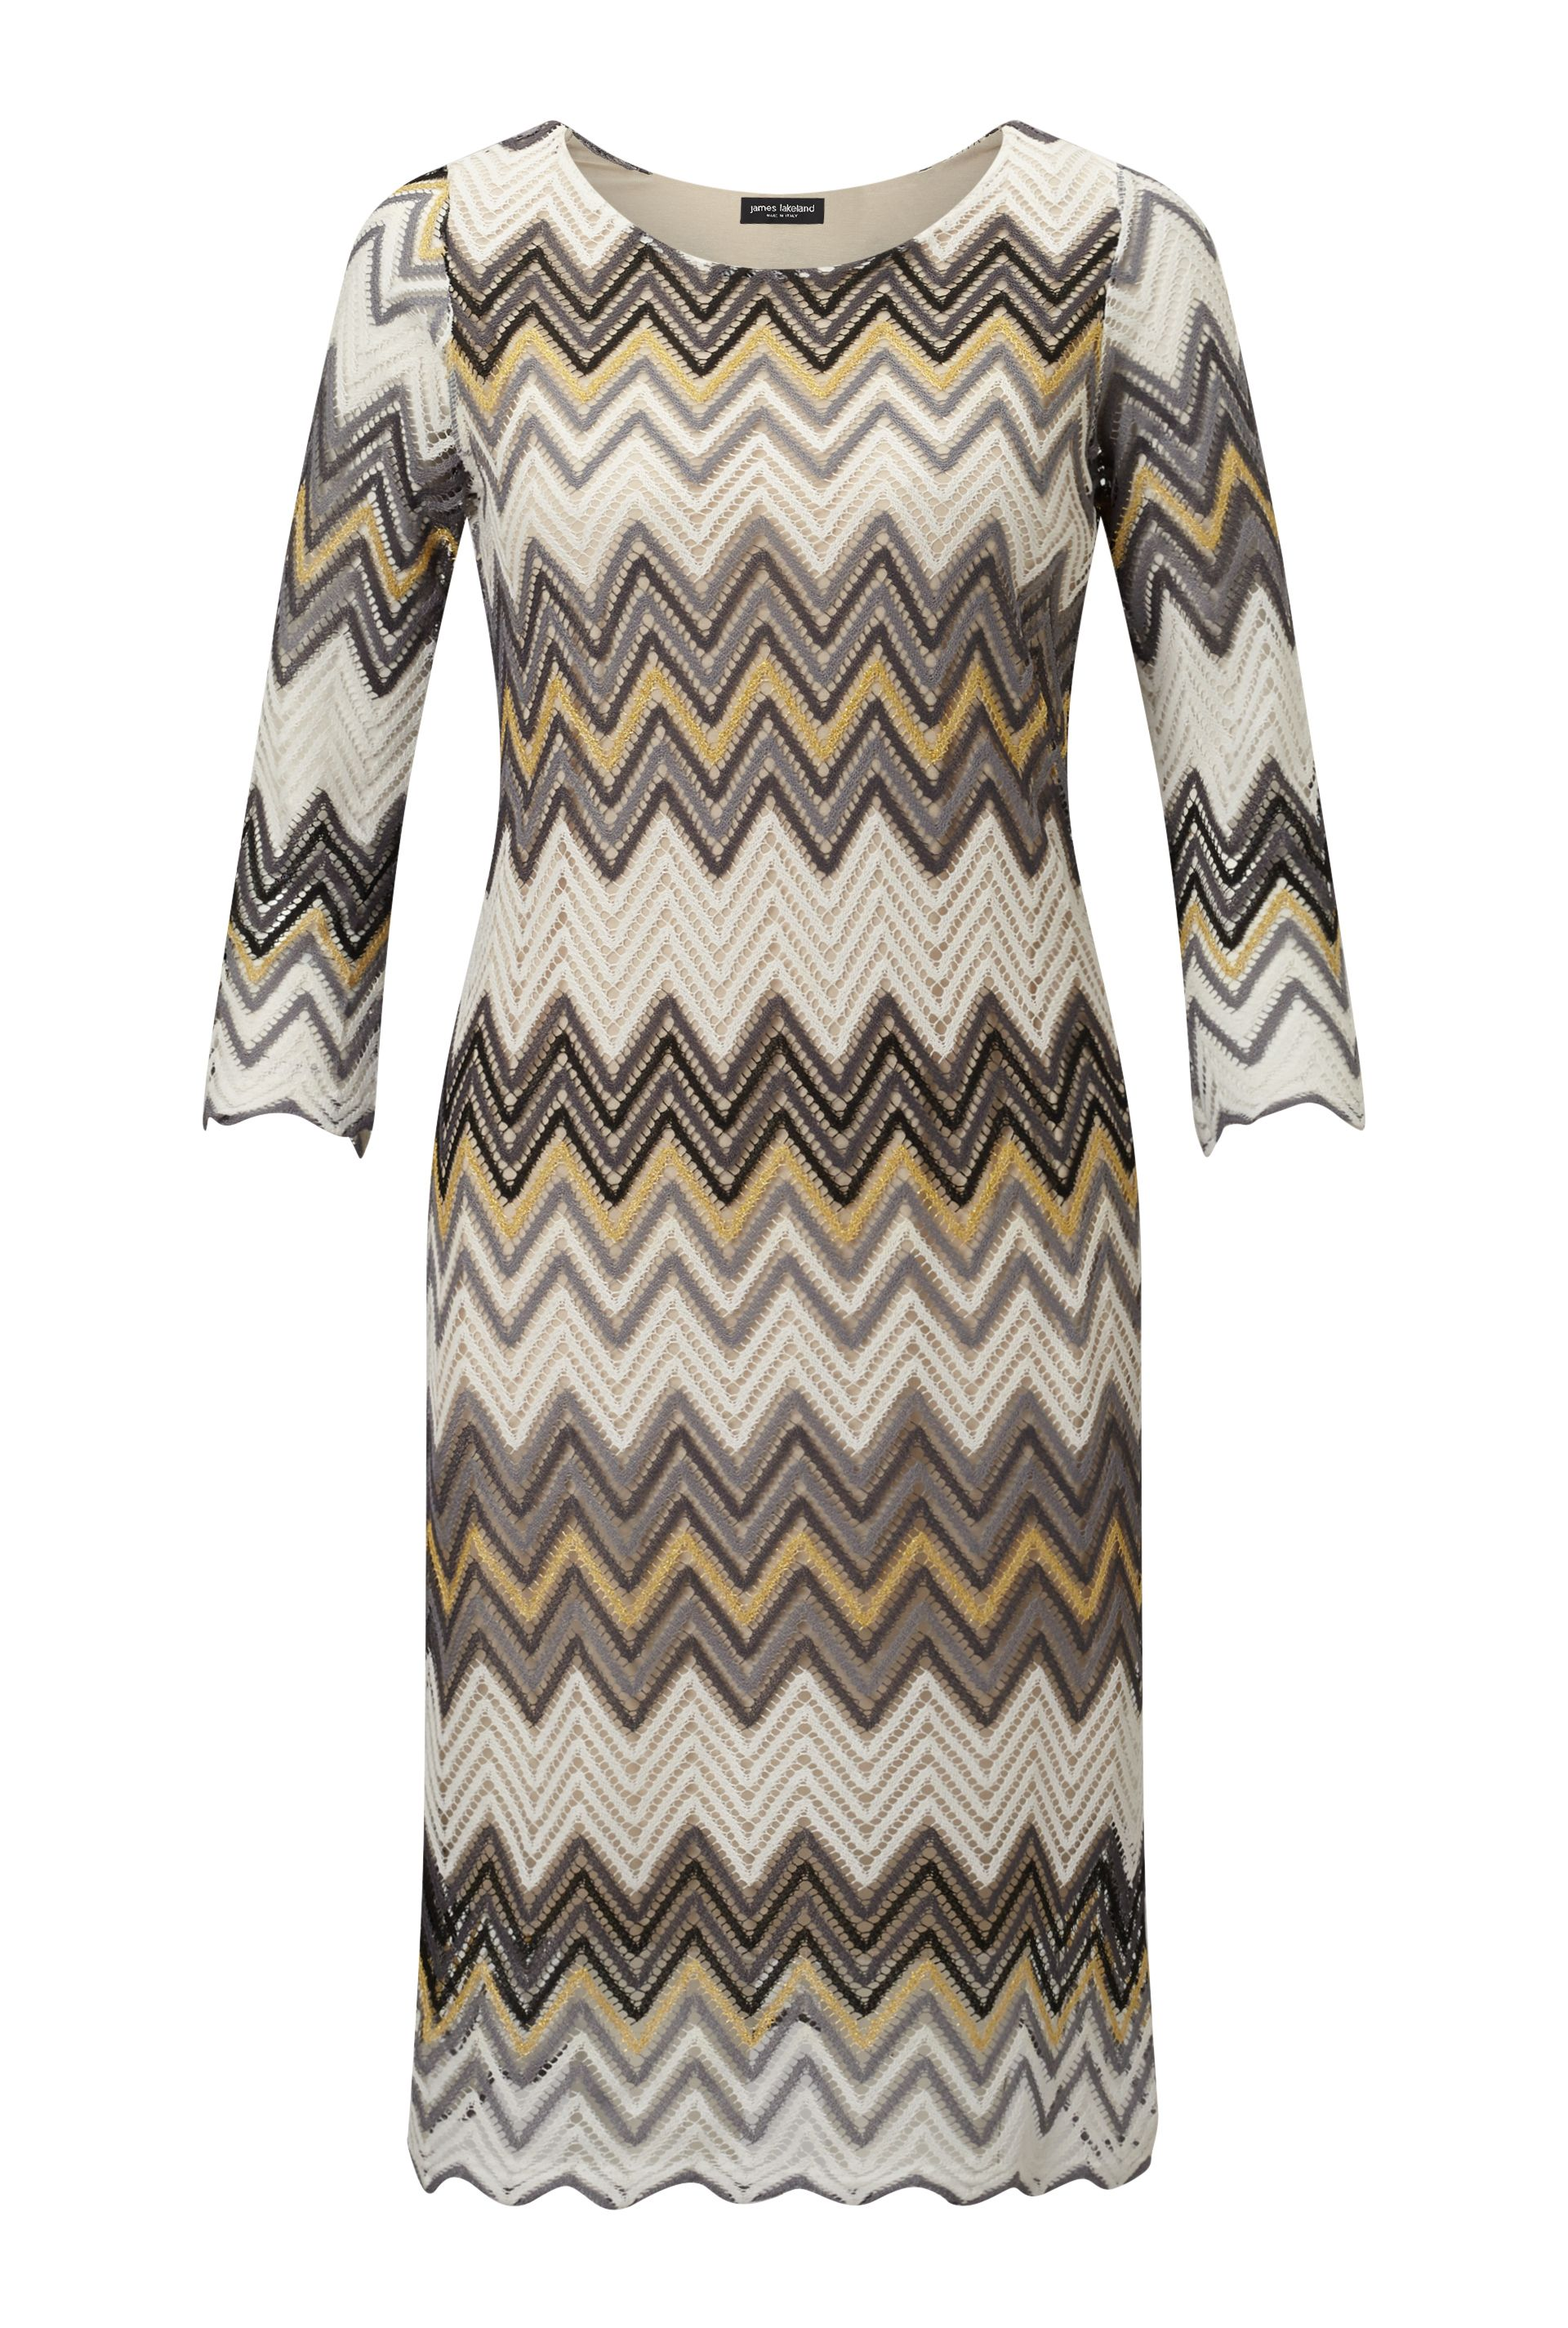 James Lakeland Zig Zag Lace Dress, Gold Silverlic